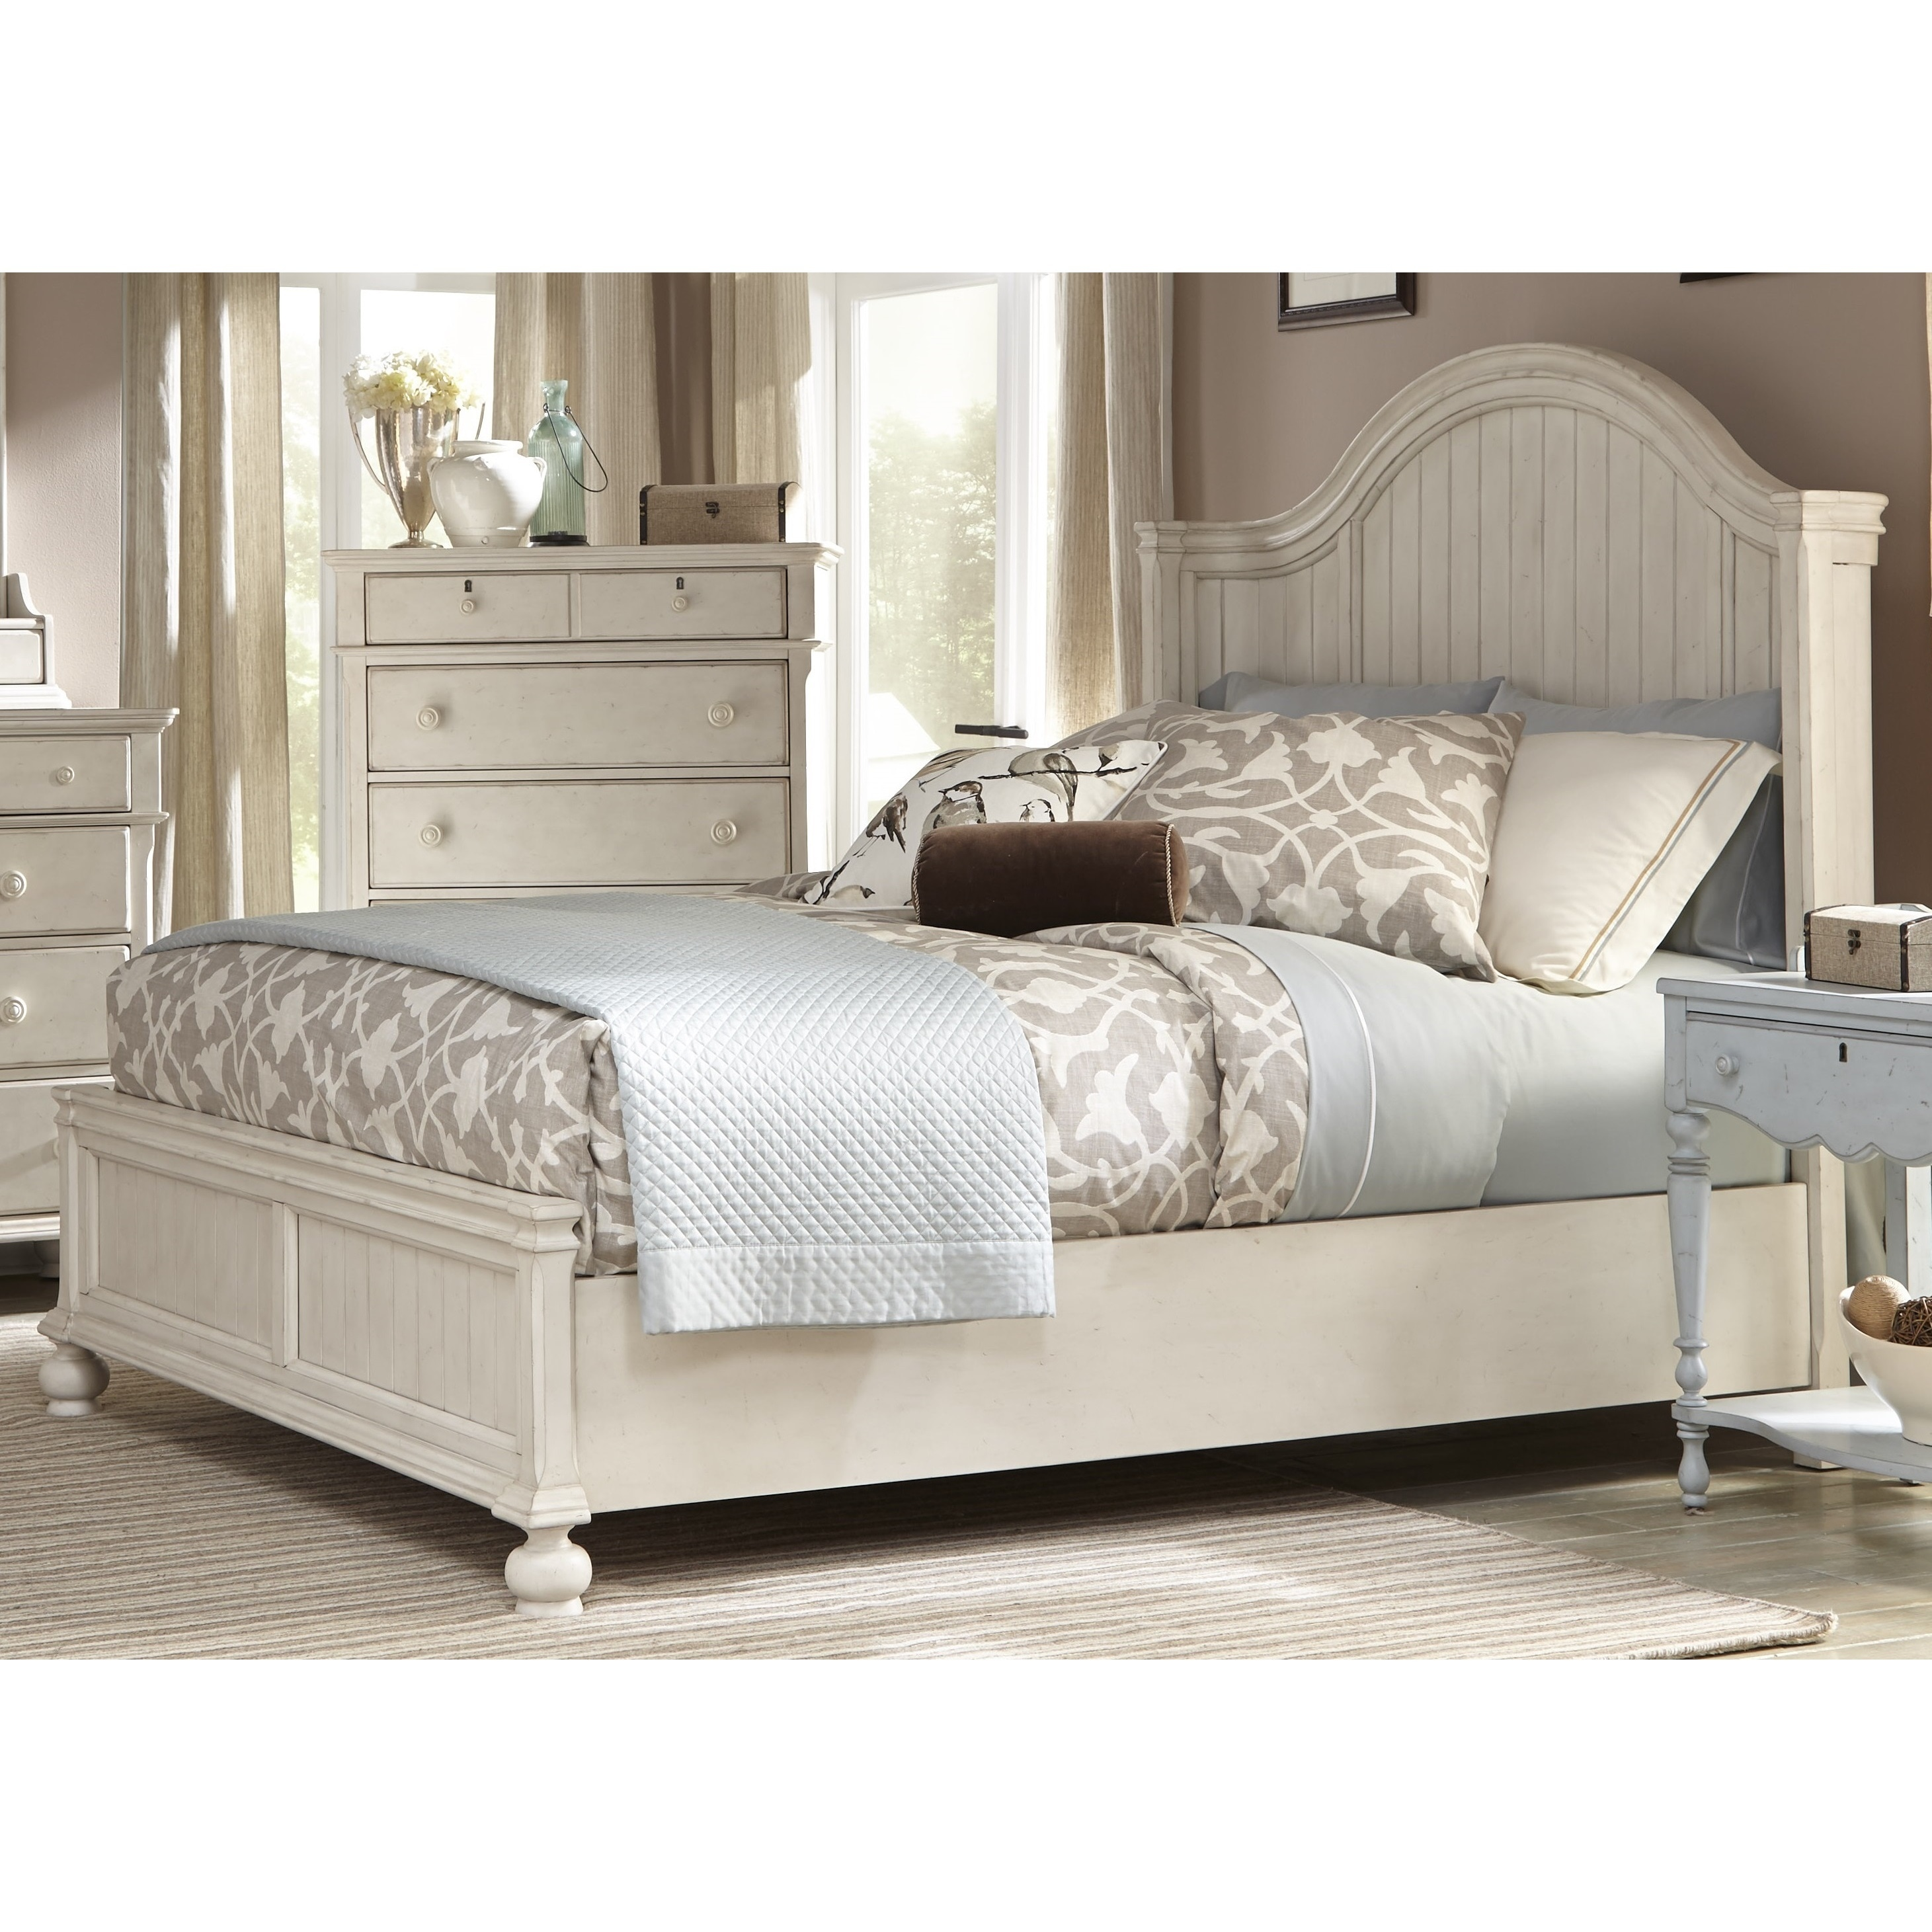 Laguna Antique White Panel Bed 6-piece Bedroom Set by Greyson ...